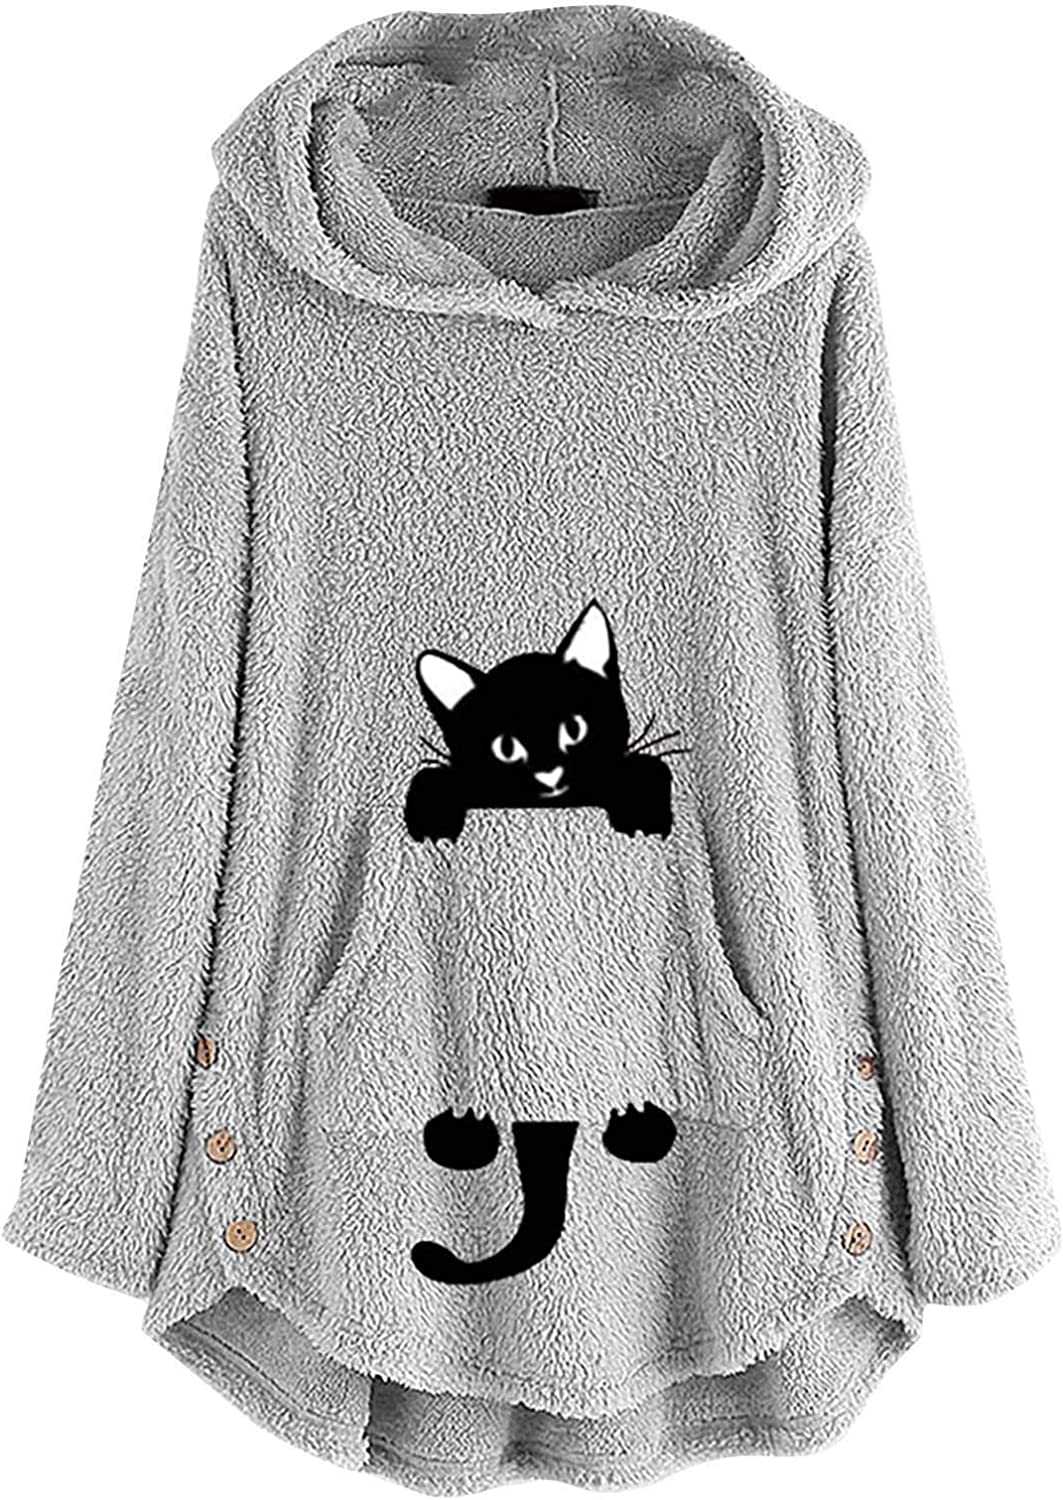 Fastbot women's Cute Hoodies Cat Printed Sweater Pullover Long Sleeve Cashmere Sweater Fuzzy Fluffy Tops